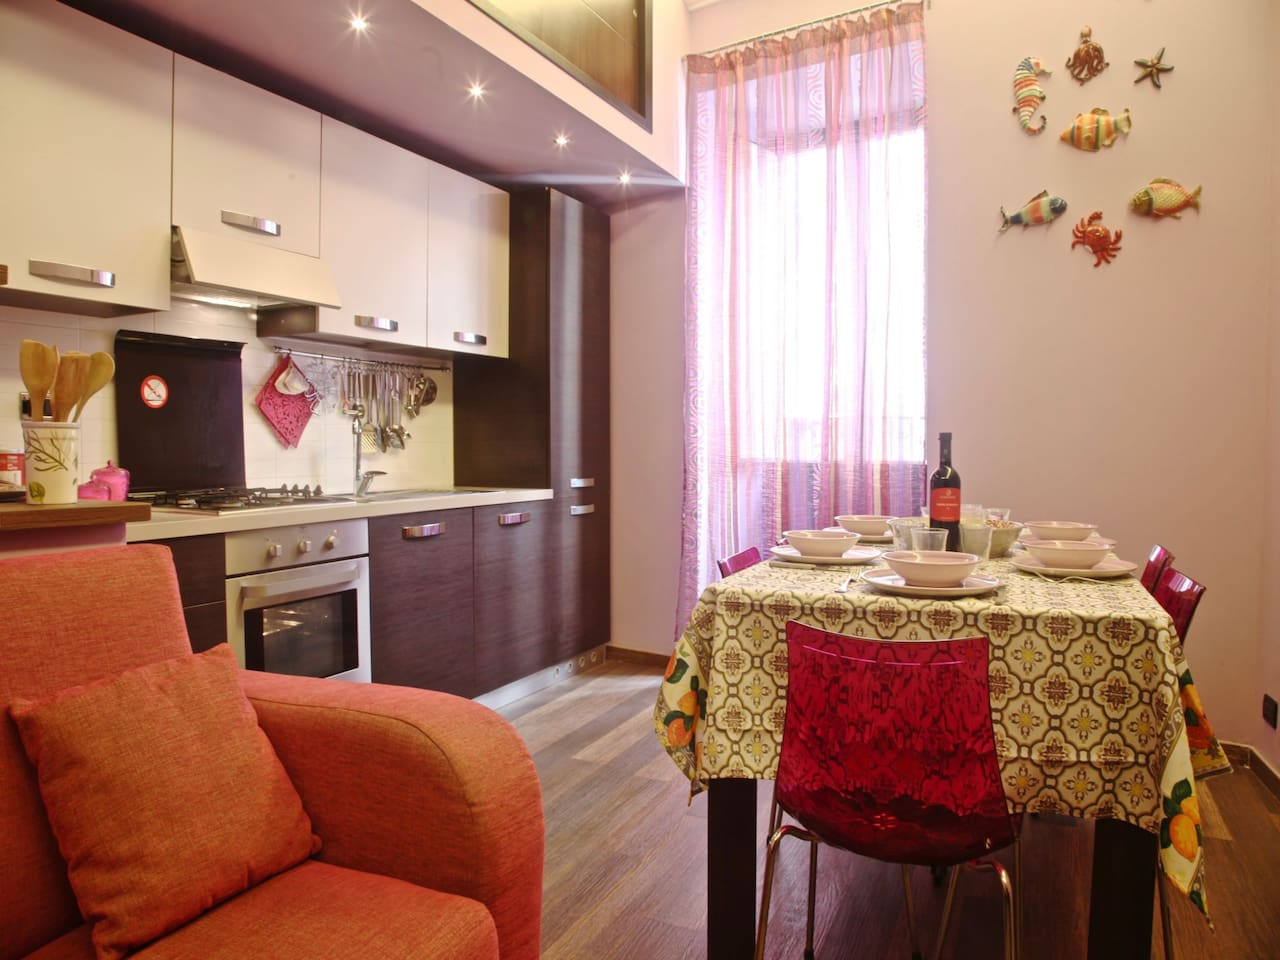 Living Room/Fully Equipped Kitchen • Salotto/ Cucina Completa